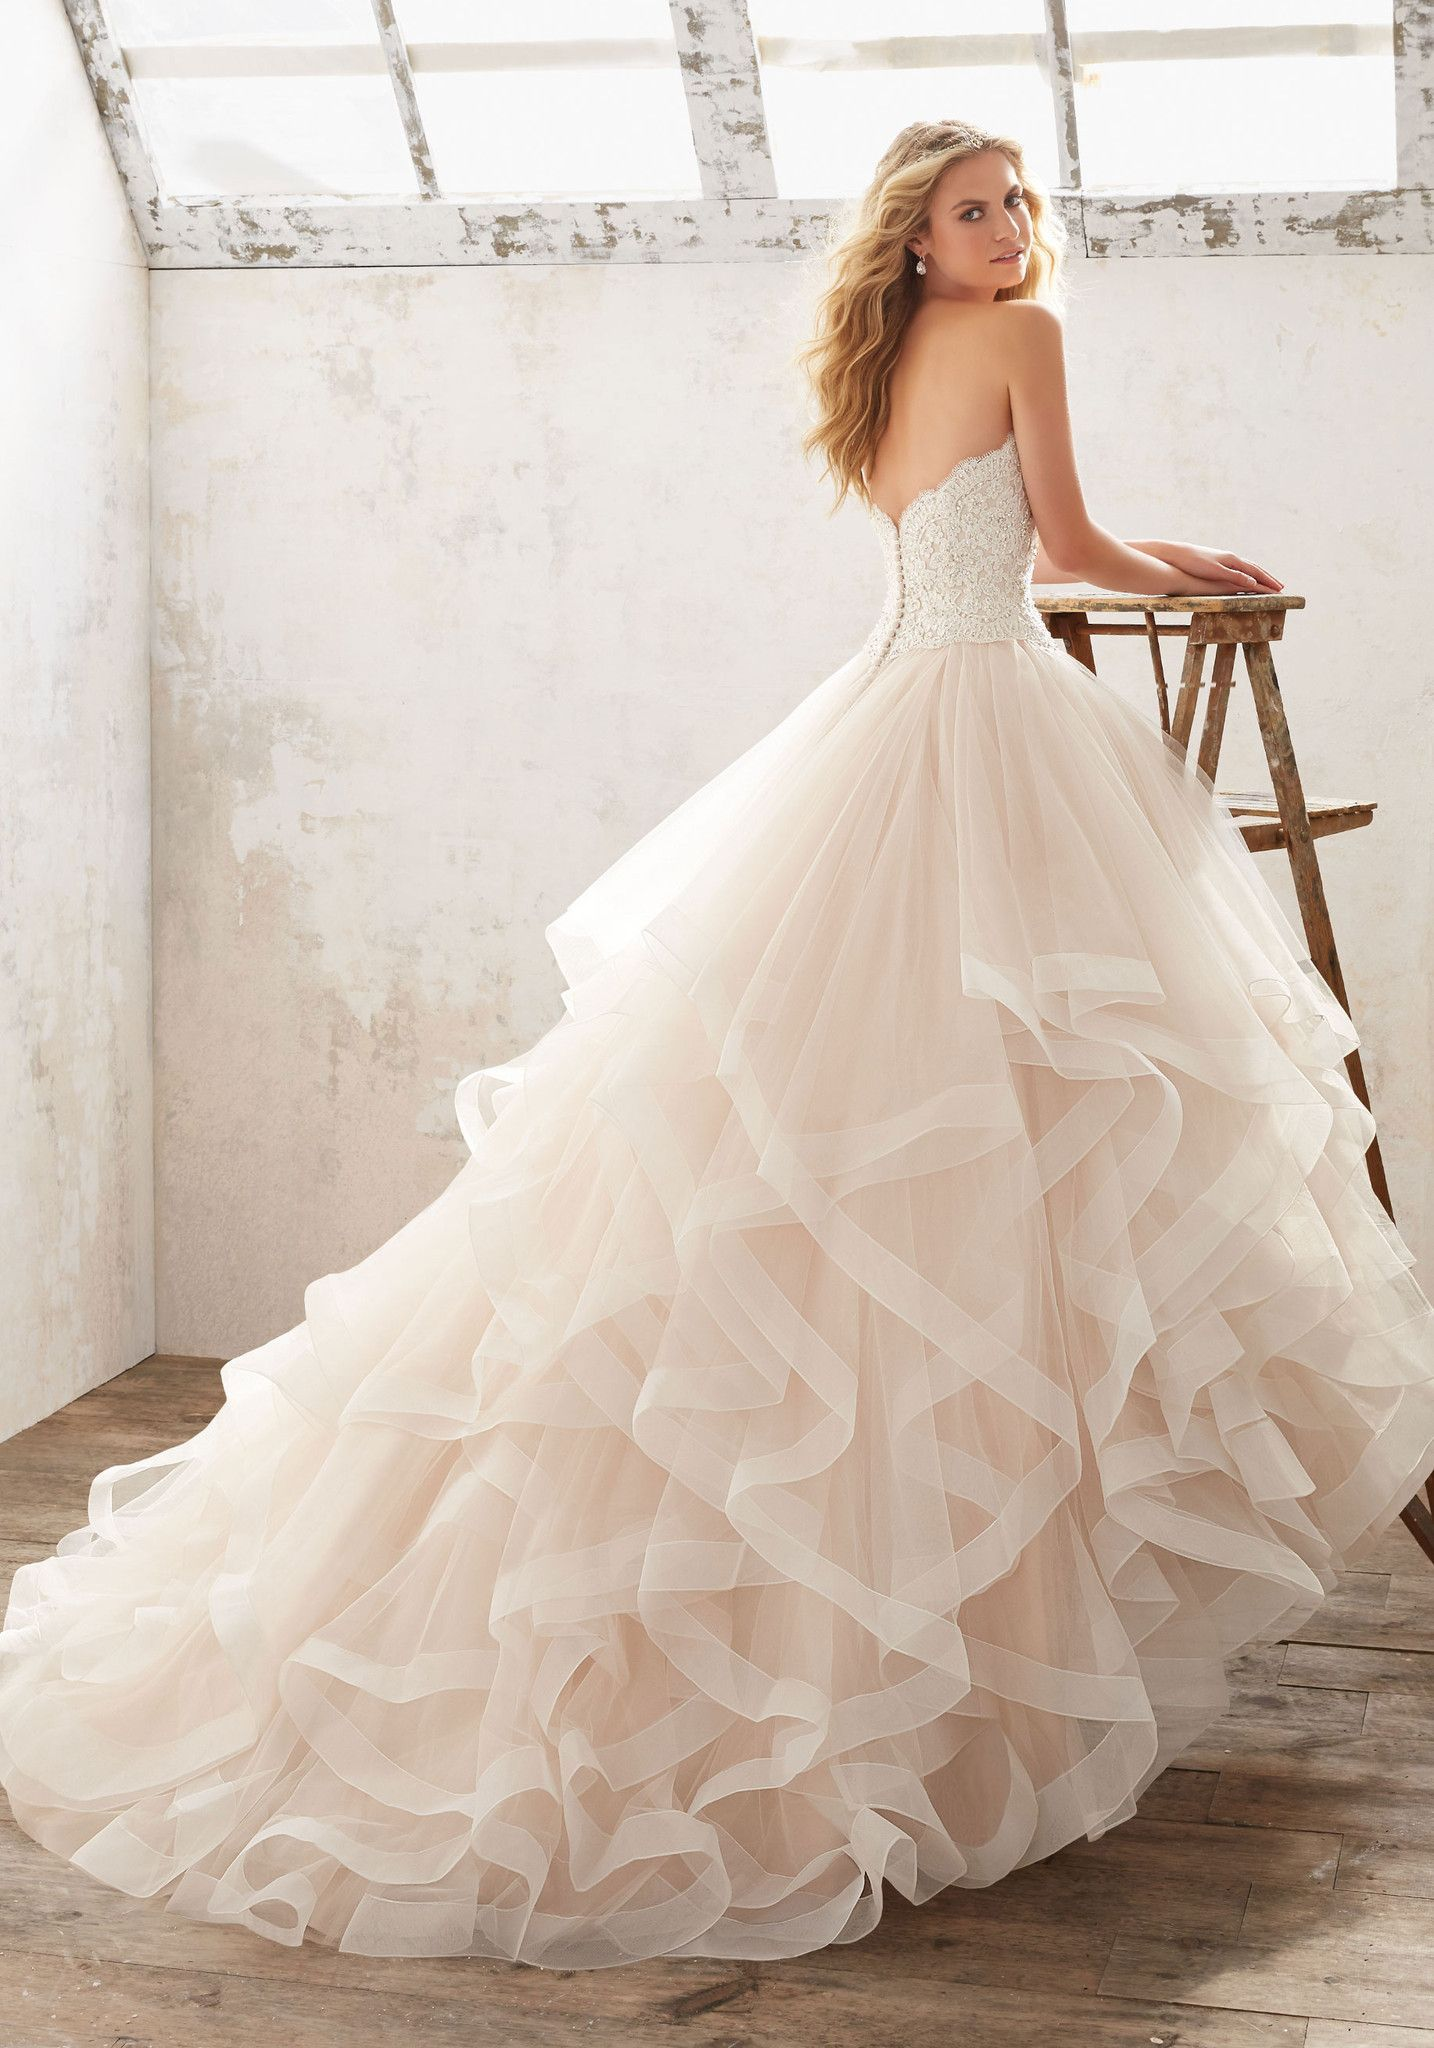 Wedding dresses with ruffles on skirt  Soft and Ethereal This Ruffled Bridal Ballgown Features a Crystal